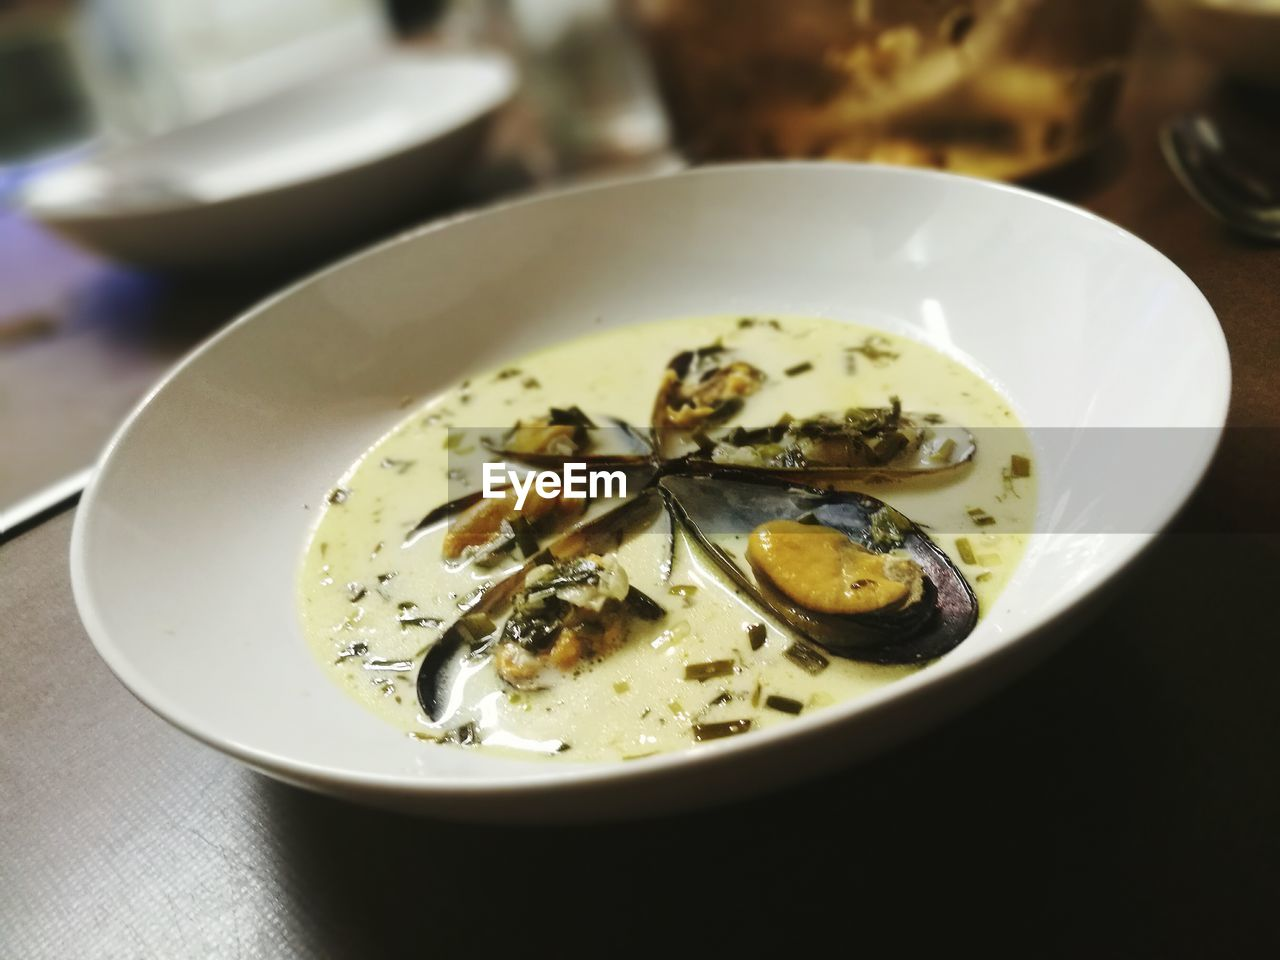 Close-up of seafood served in bowl on table